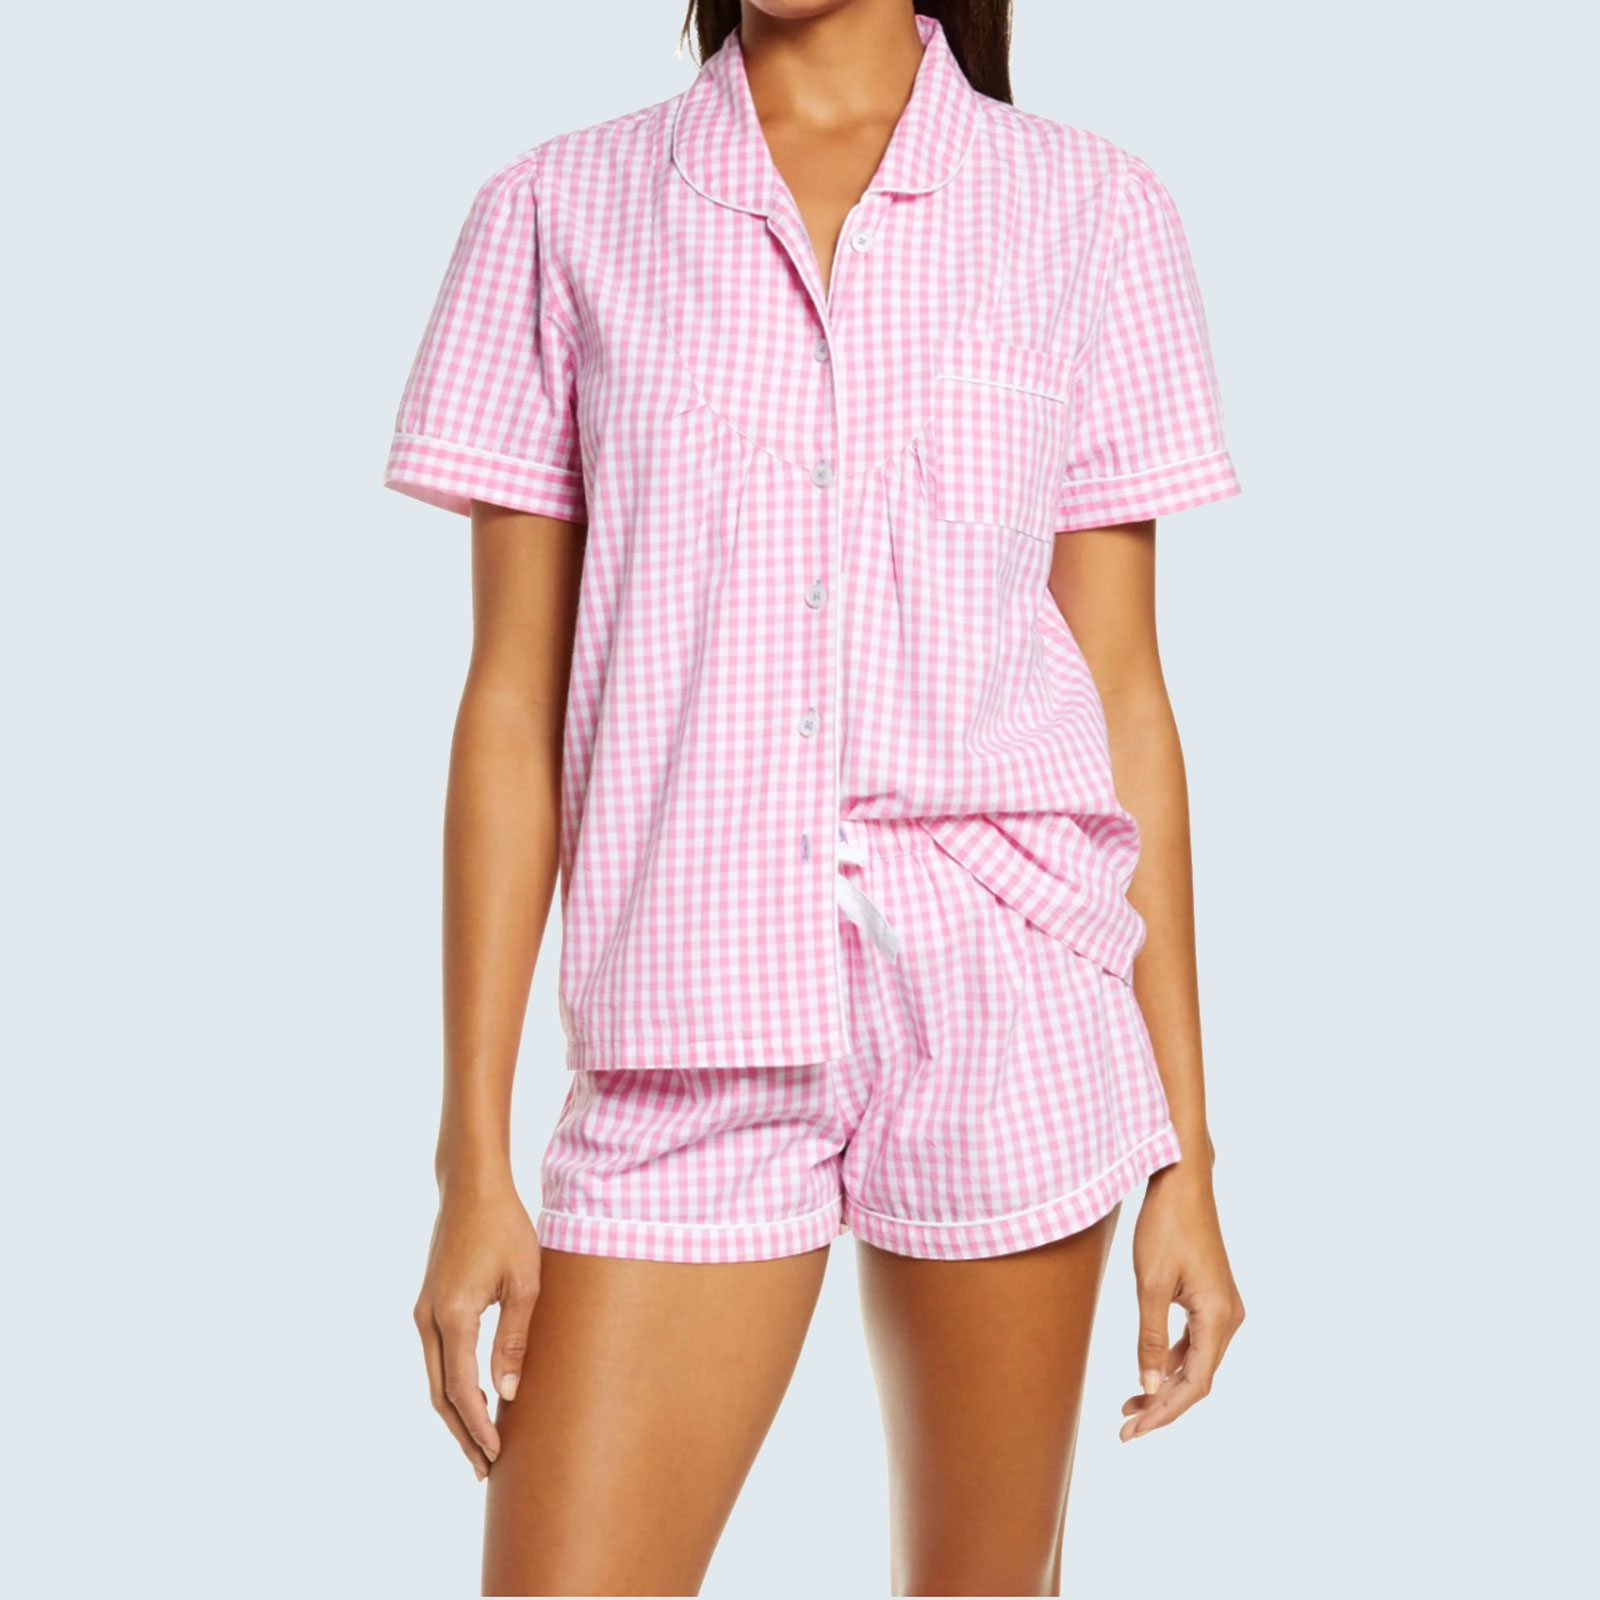 Short Sleeve Boxer Pajamas from Sant and Abel